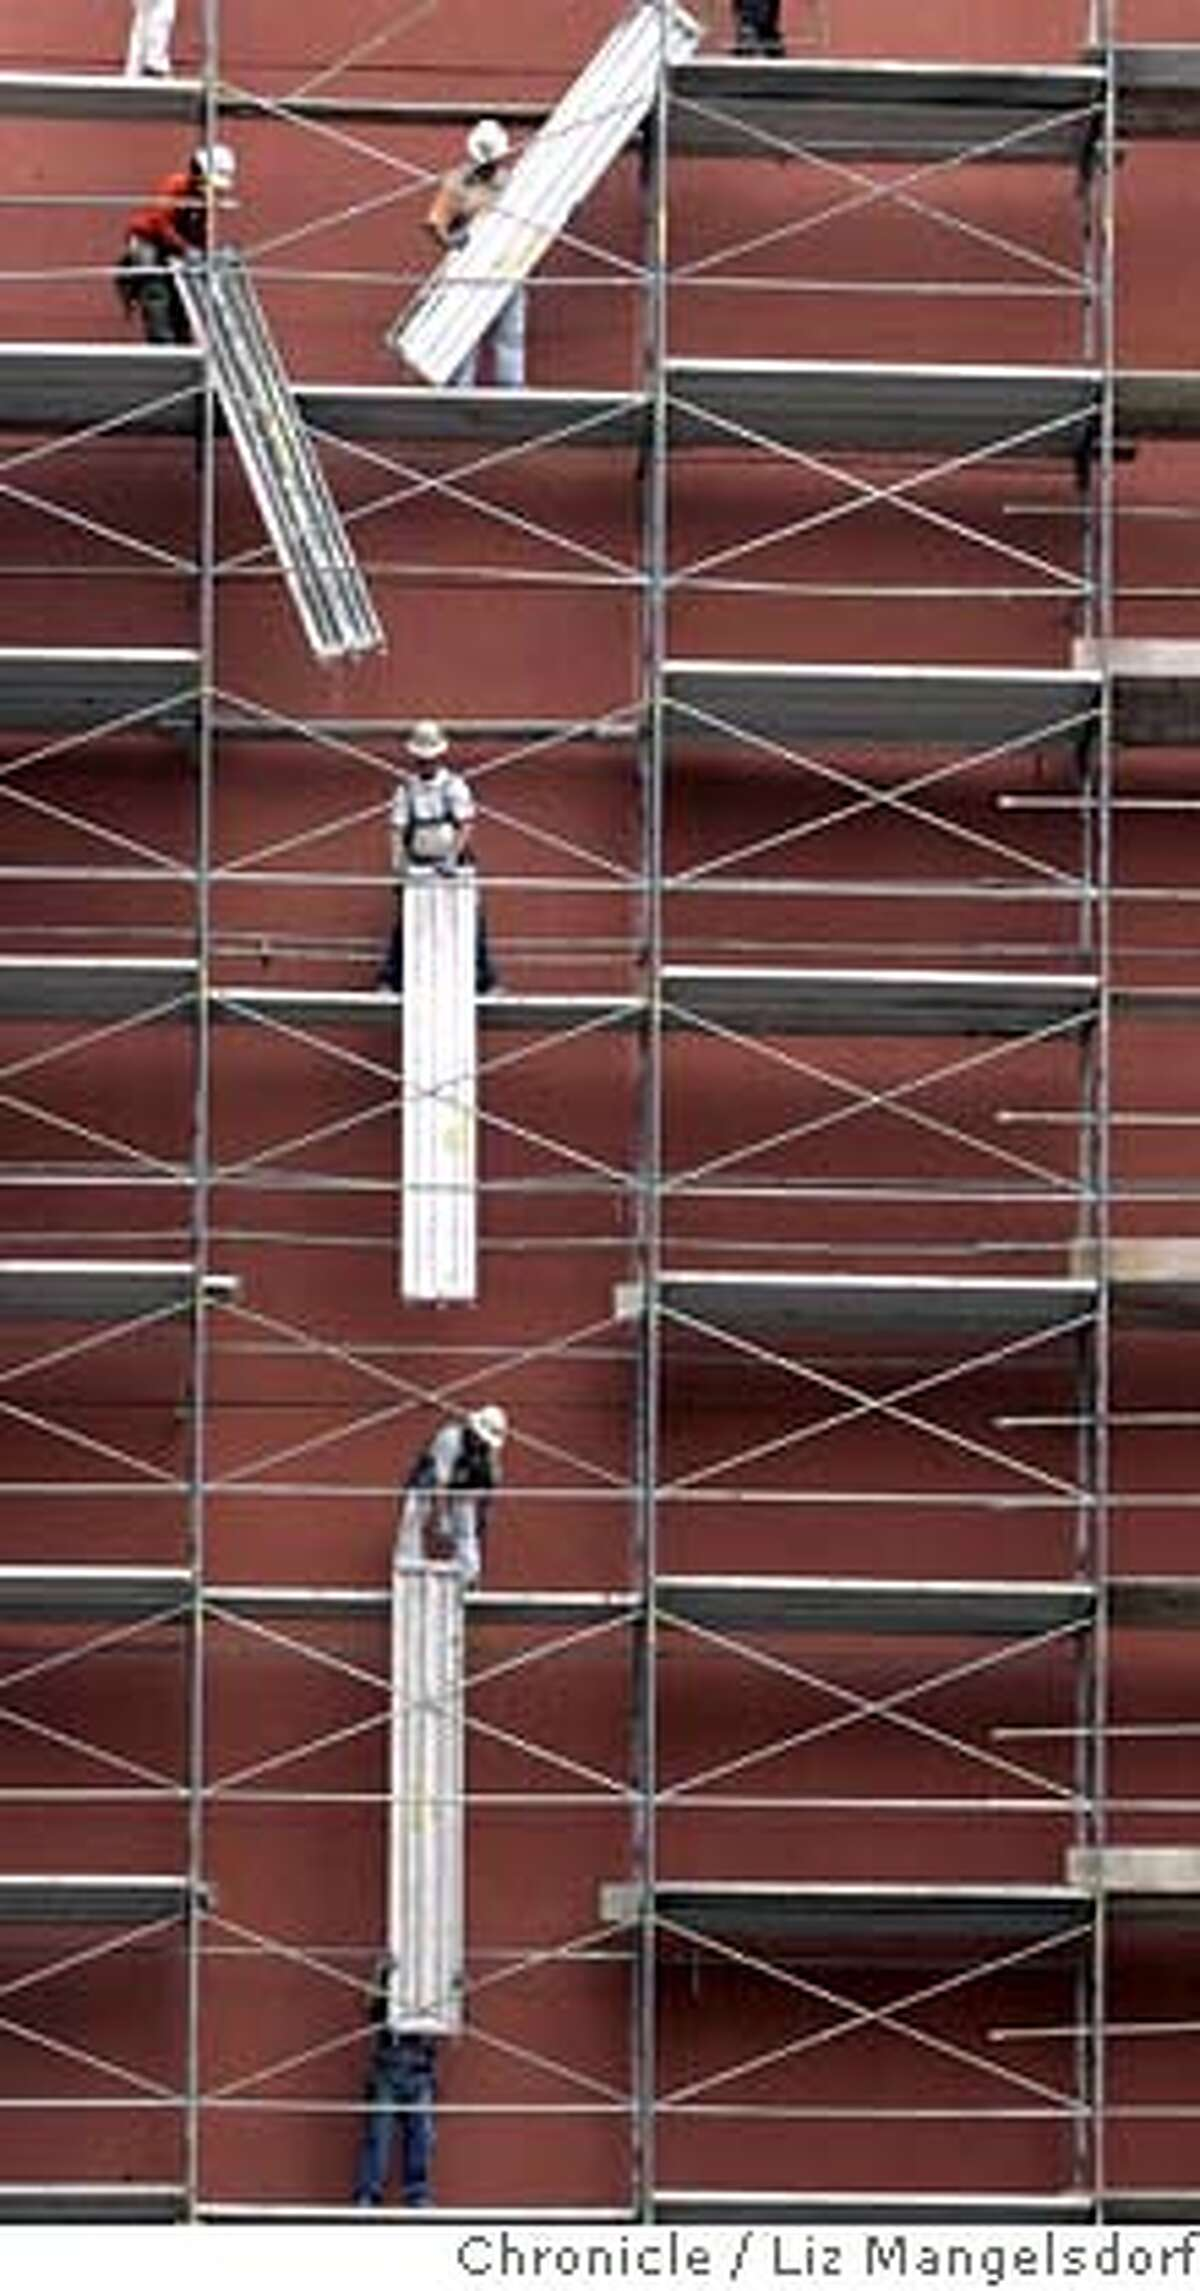 scaffold042_lm.JPG Event on 7/18/05 in San Francisco. Employees of Safway(cq) Services remove their scaffolding on Jessie street near 5th street at the former Emporium store building. Liz Mangelsdorf / The Chronicle MANDATORY CREDIT FOR PHOTOG AND SF CHRONICLE/ -MAGS OUT